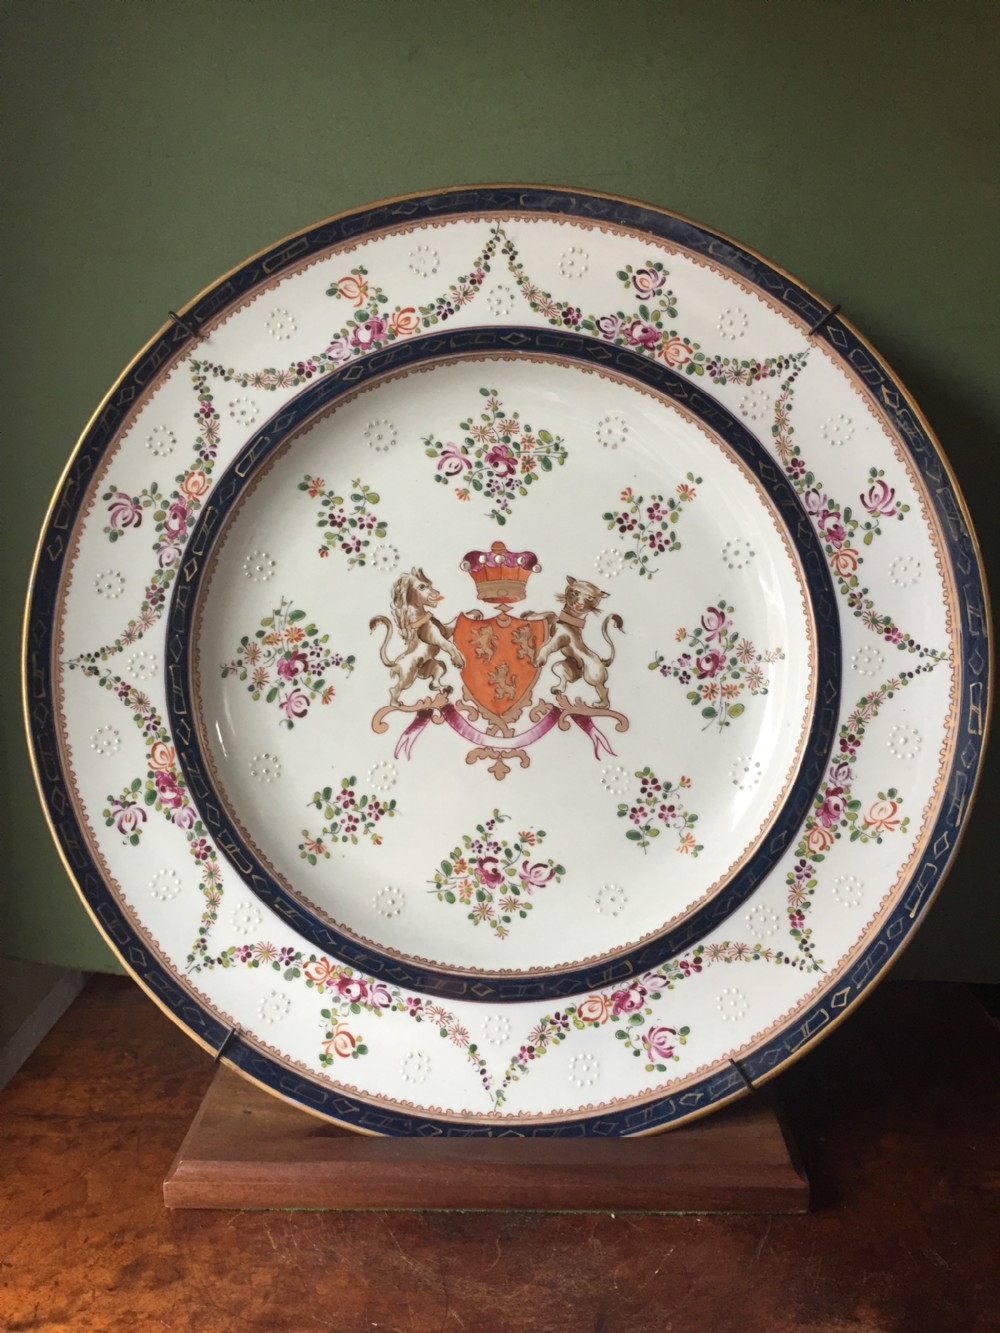 large mid c19th armorial porcelain dish by samson of paris in the c18th chinese export style